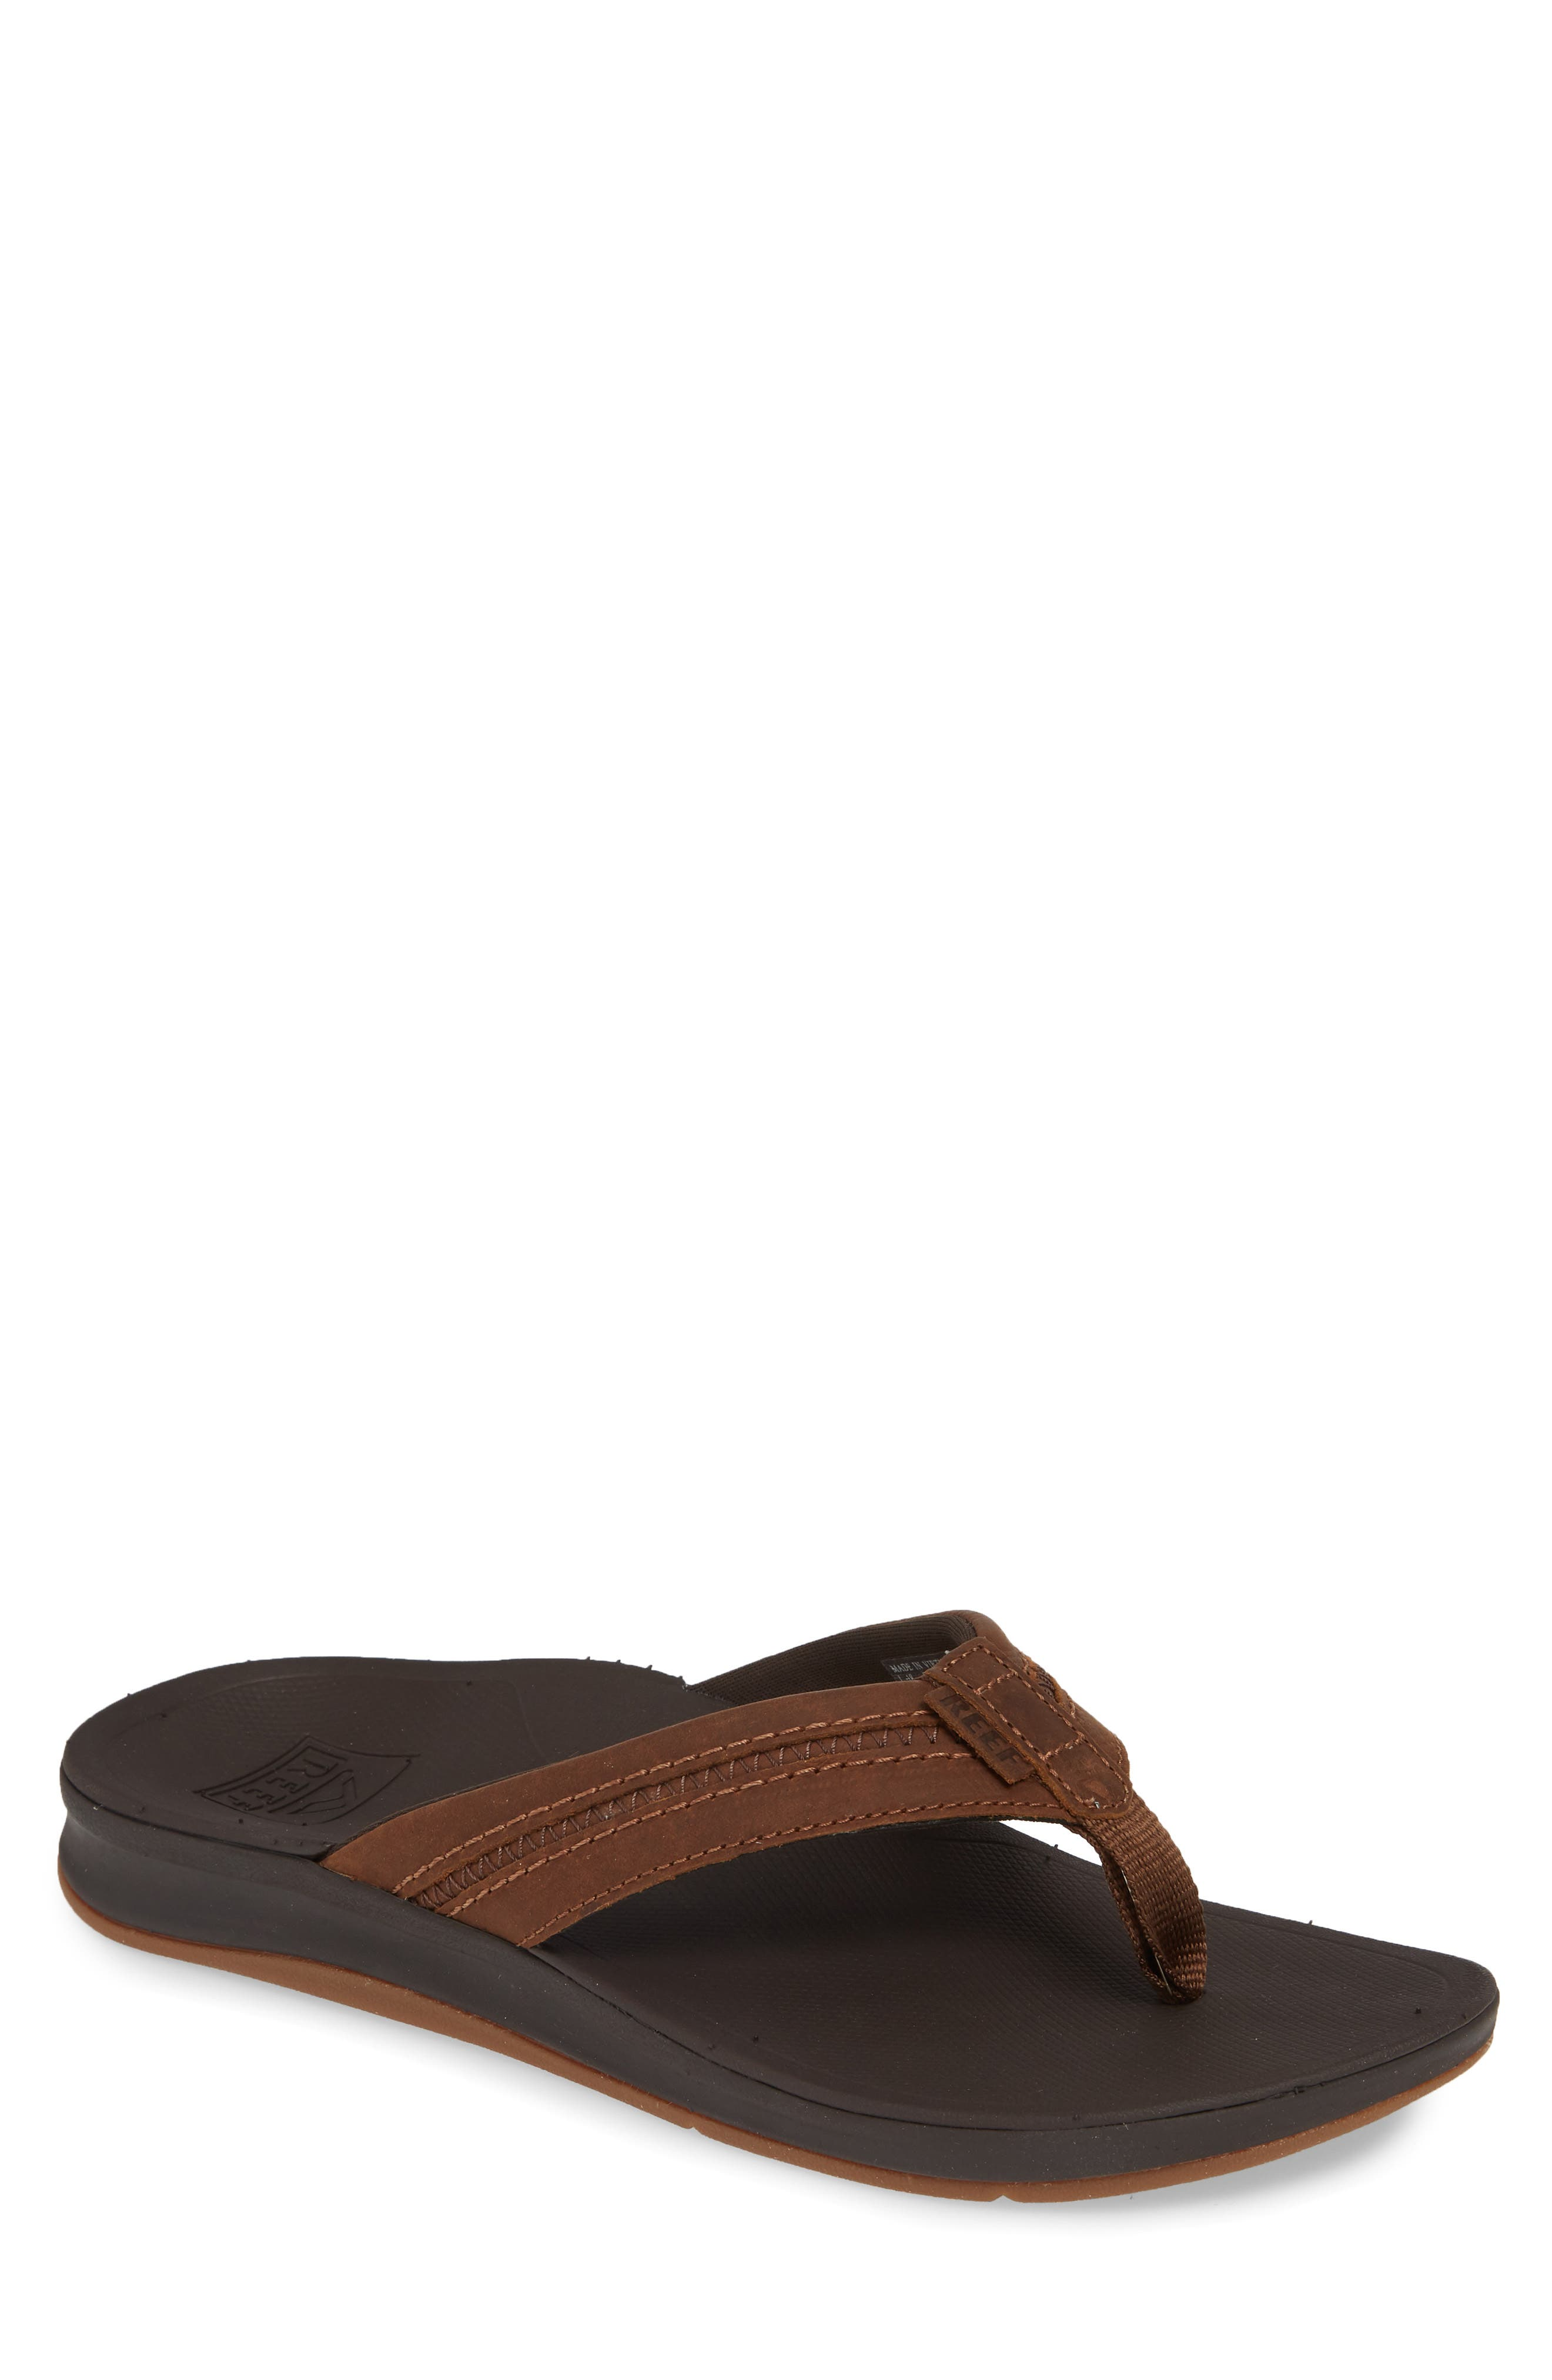 REEF, Ortho Bounce Coast Flip Flop, Main thumbnail 1, color, BROWN